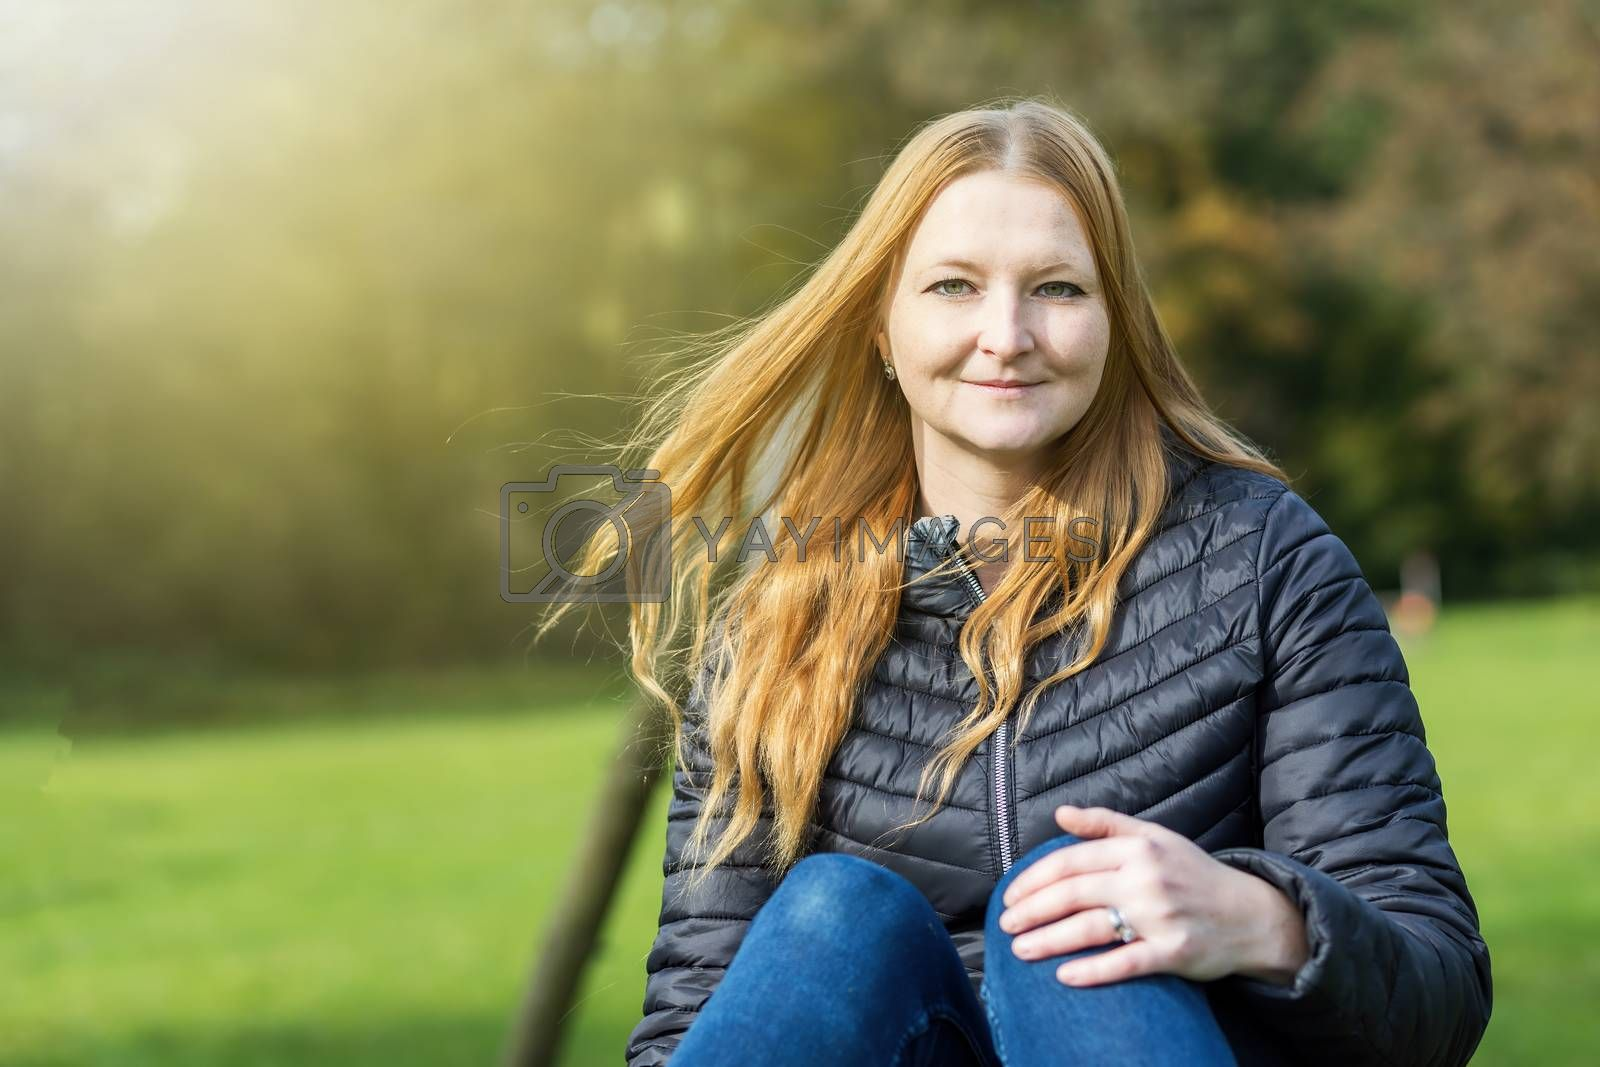 Portrait of red haired young woman posing n autumn park. The woman is looking at the camera.